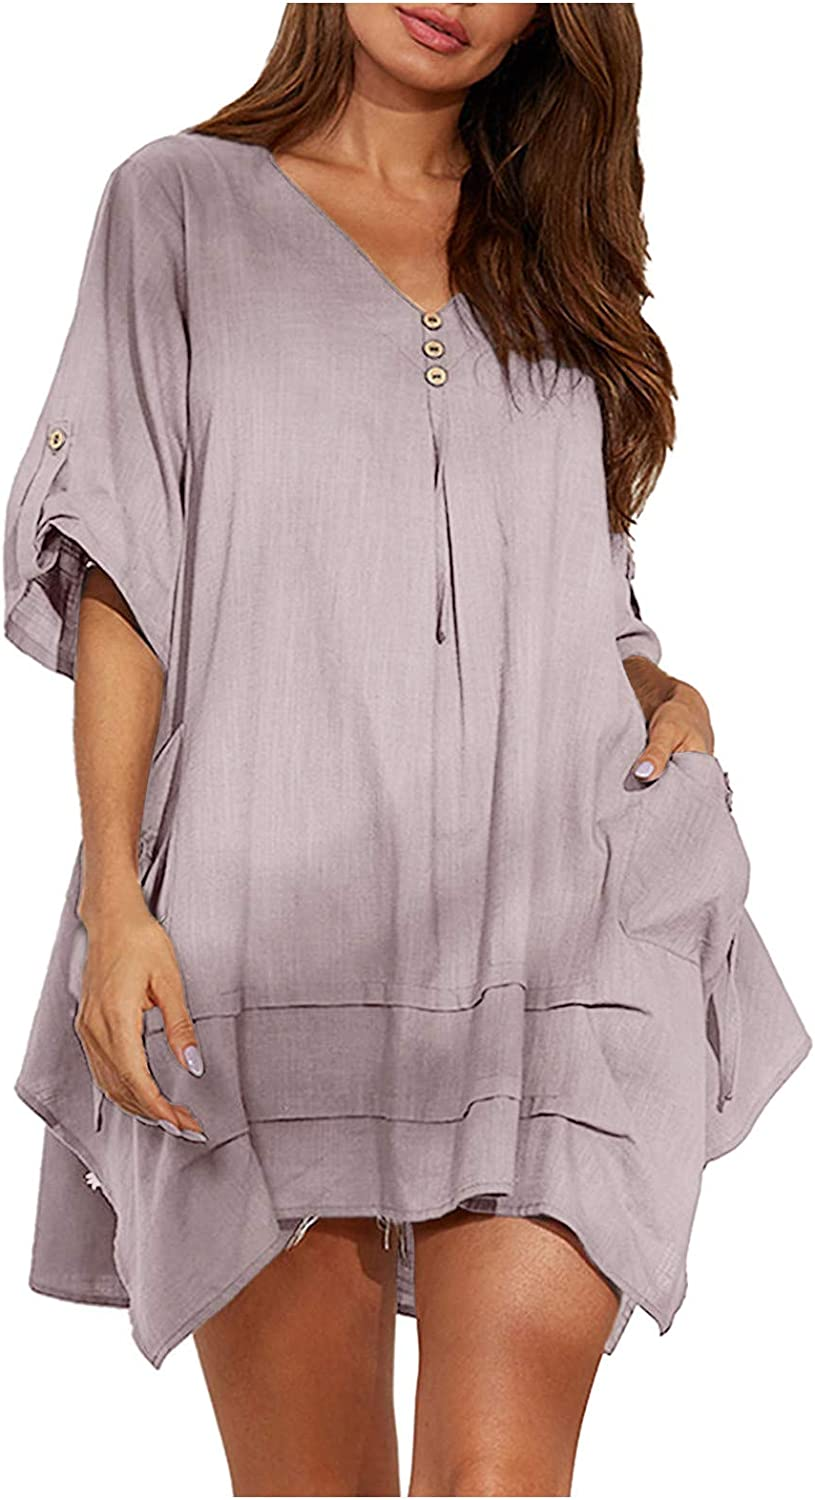 Forwelly Baggy Oversized Shirt for Women Ladies Summer Casual Short Sleeve Cotton Linen Tunic Top Tee Bloues